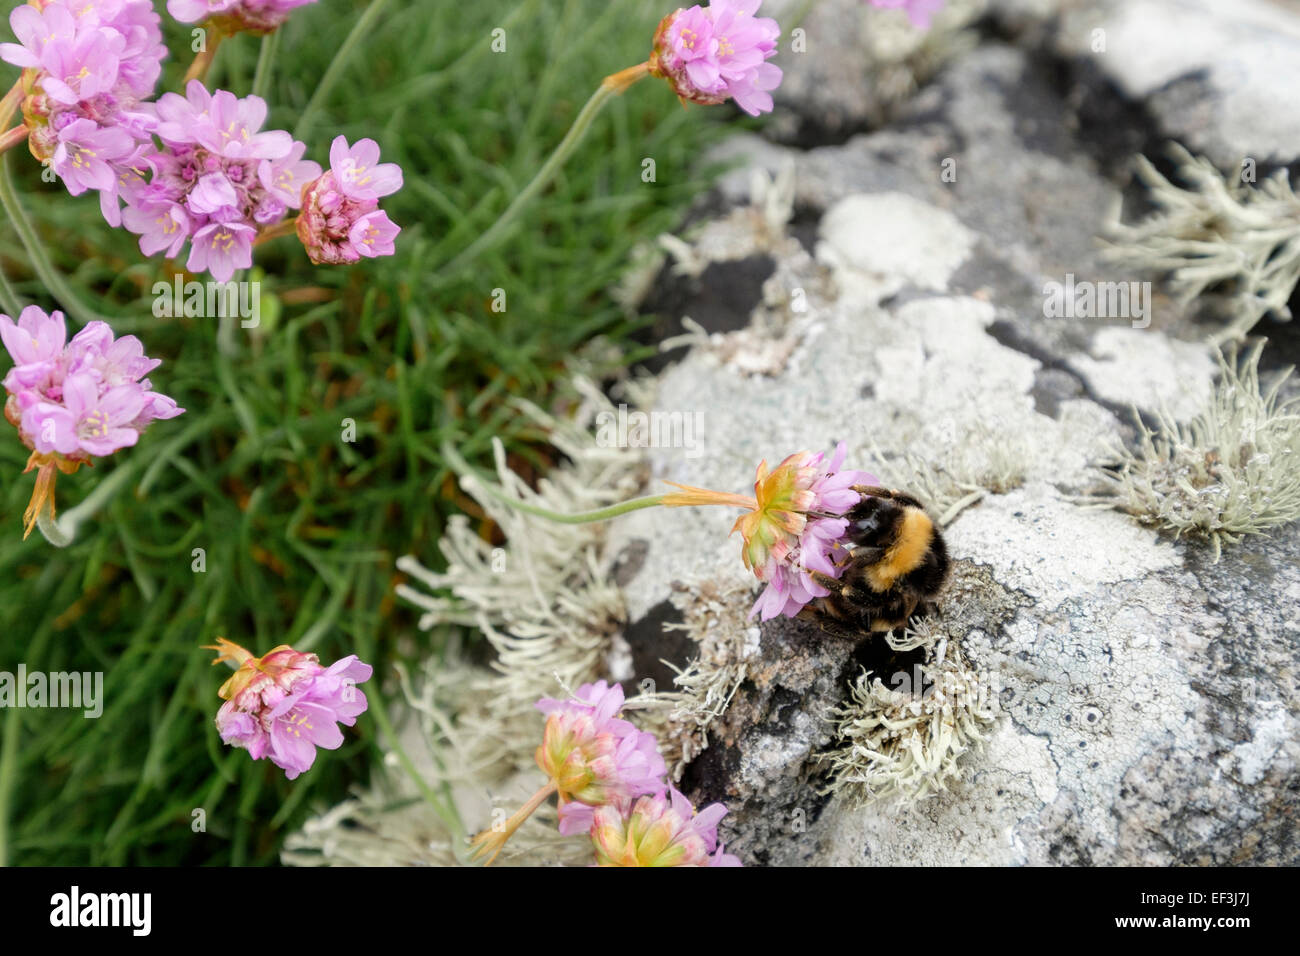 Thrift flower stock photos thrift flower stock images alamy bumble bee feeding on nectar in thrift or sea pinks flower armeria maritima growing mightylinksfo